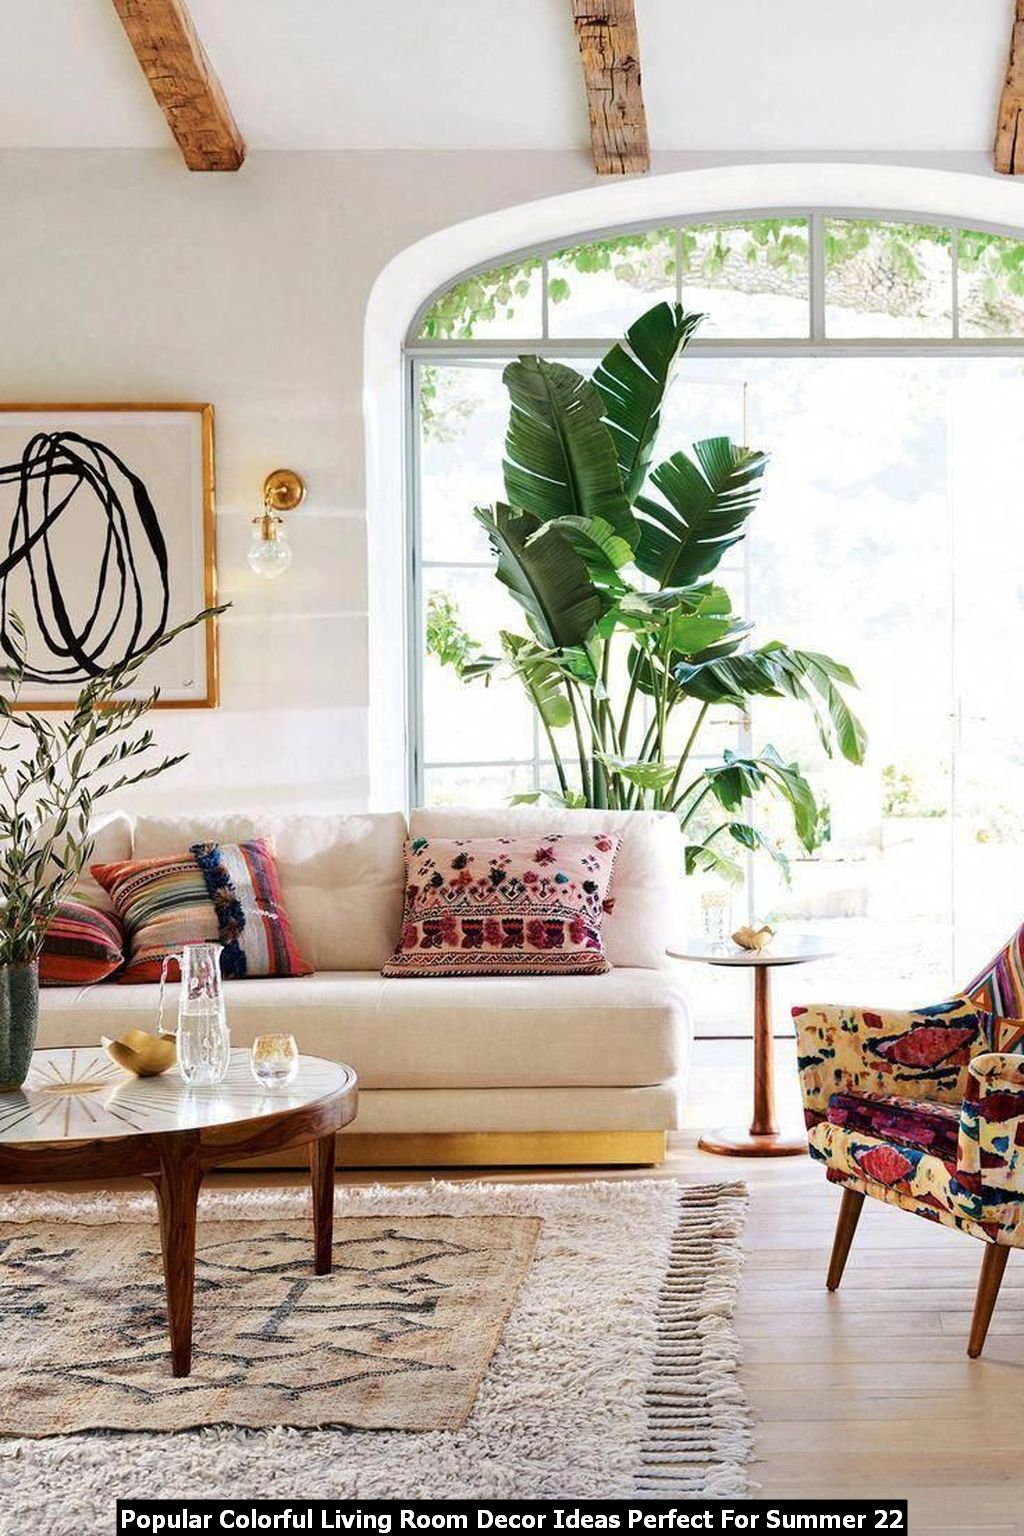 Popular Colorful Living Room Decor Ideas Perfect For Summer 22